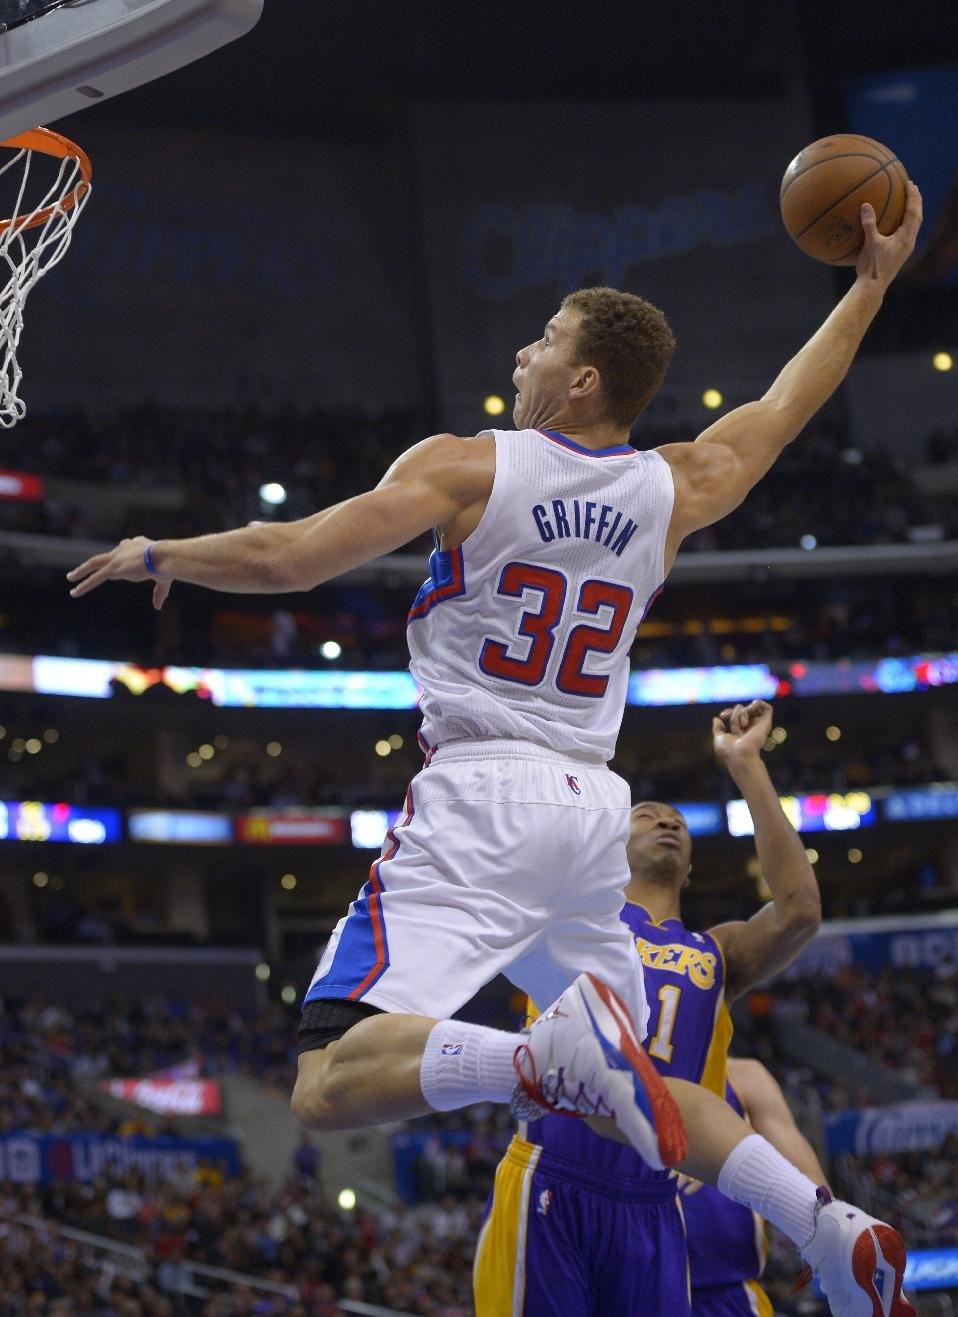 Blake Griffin dunks on Kaman & dominates the Lakers